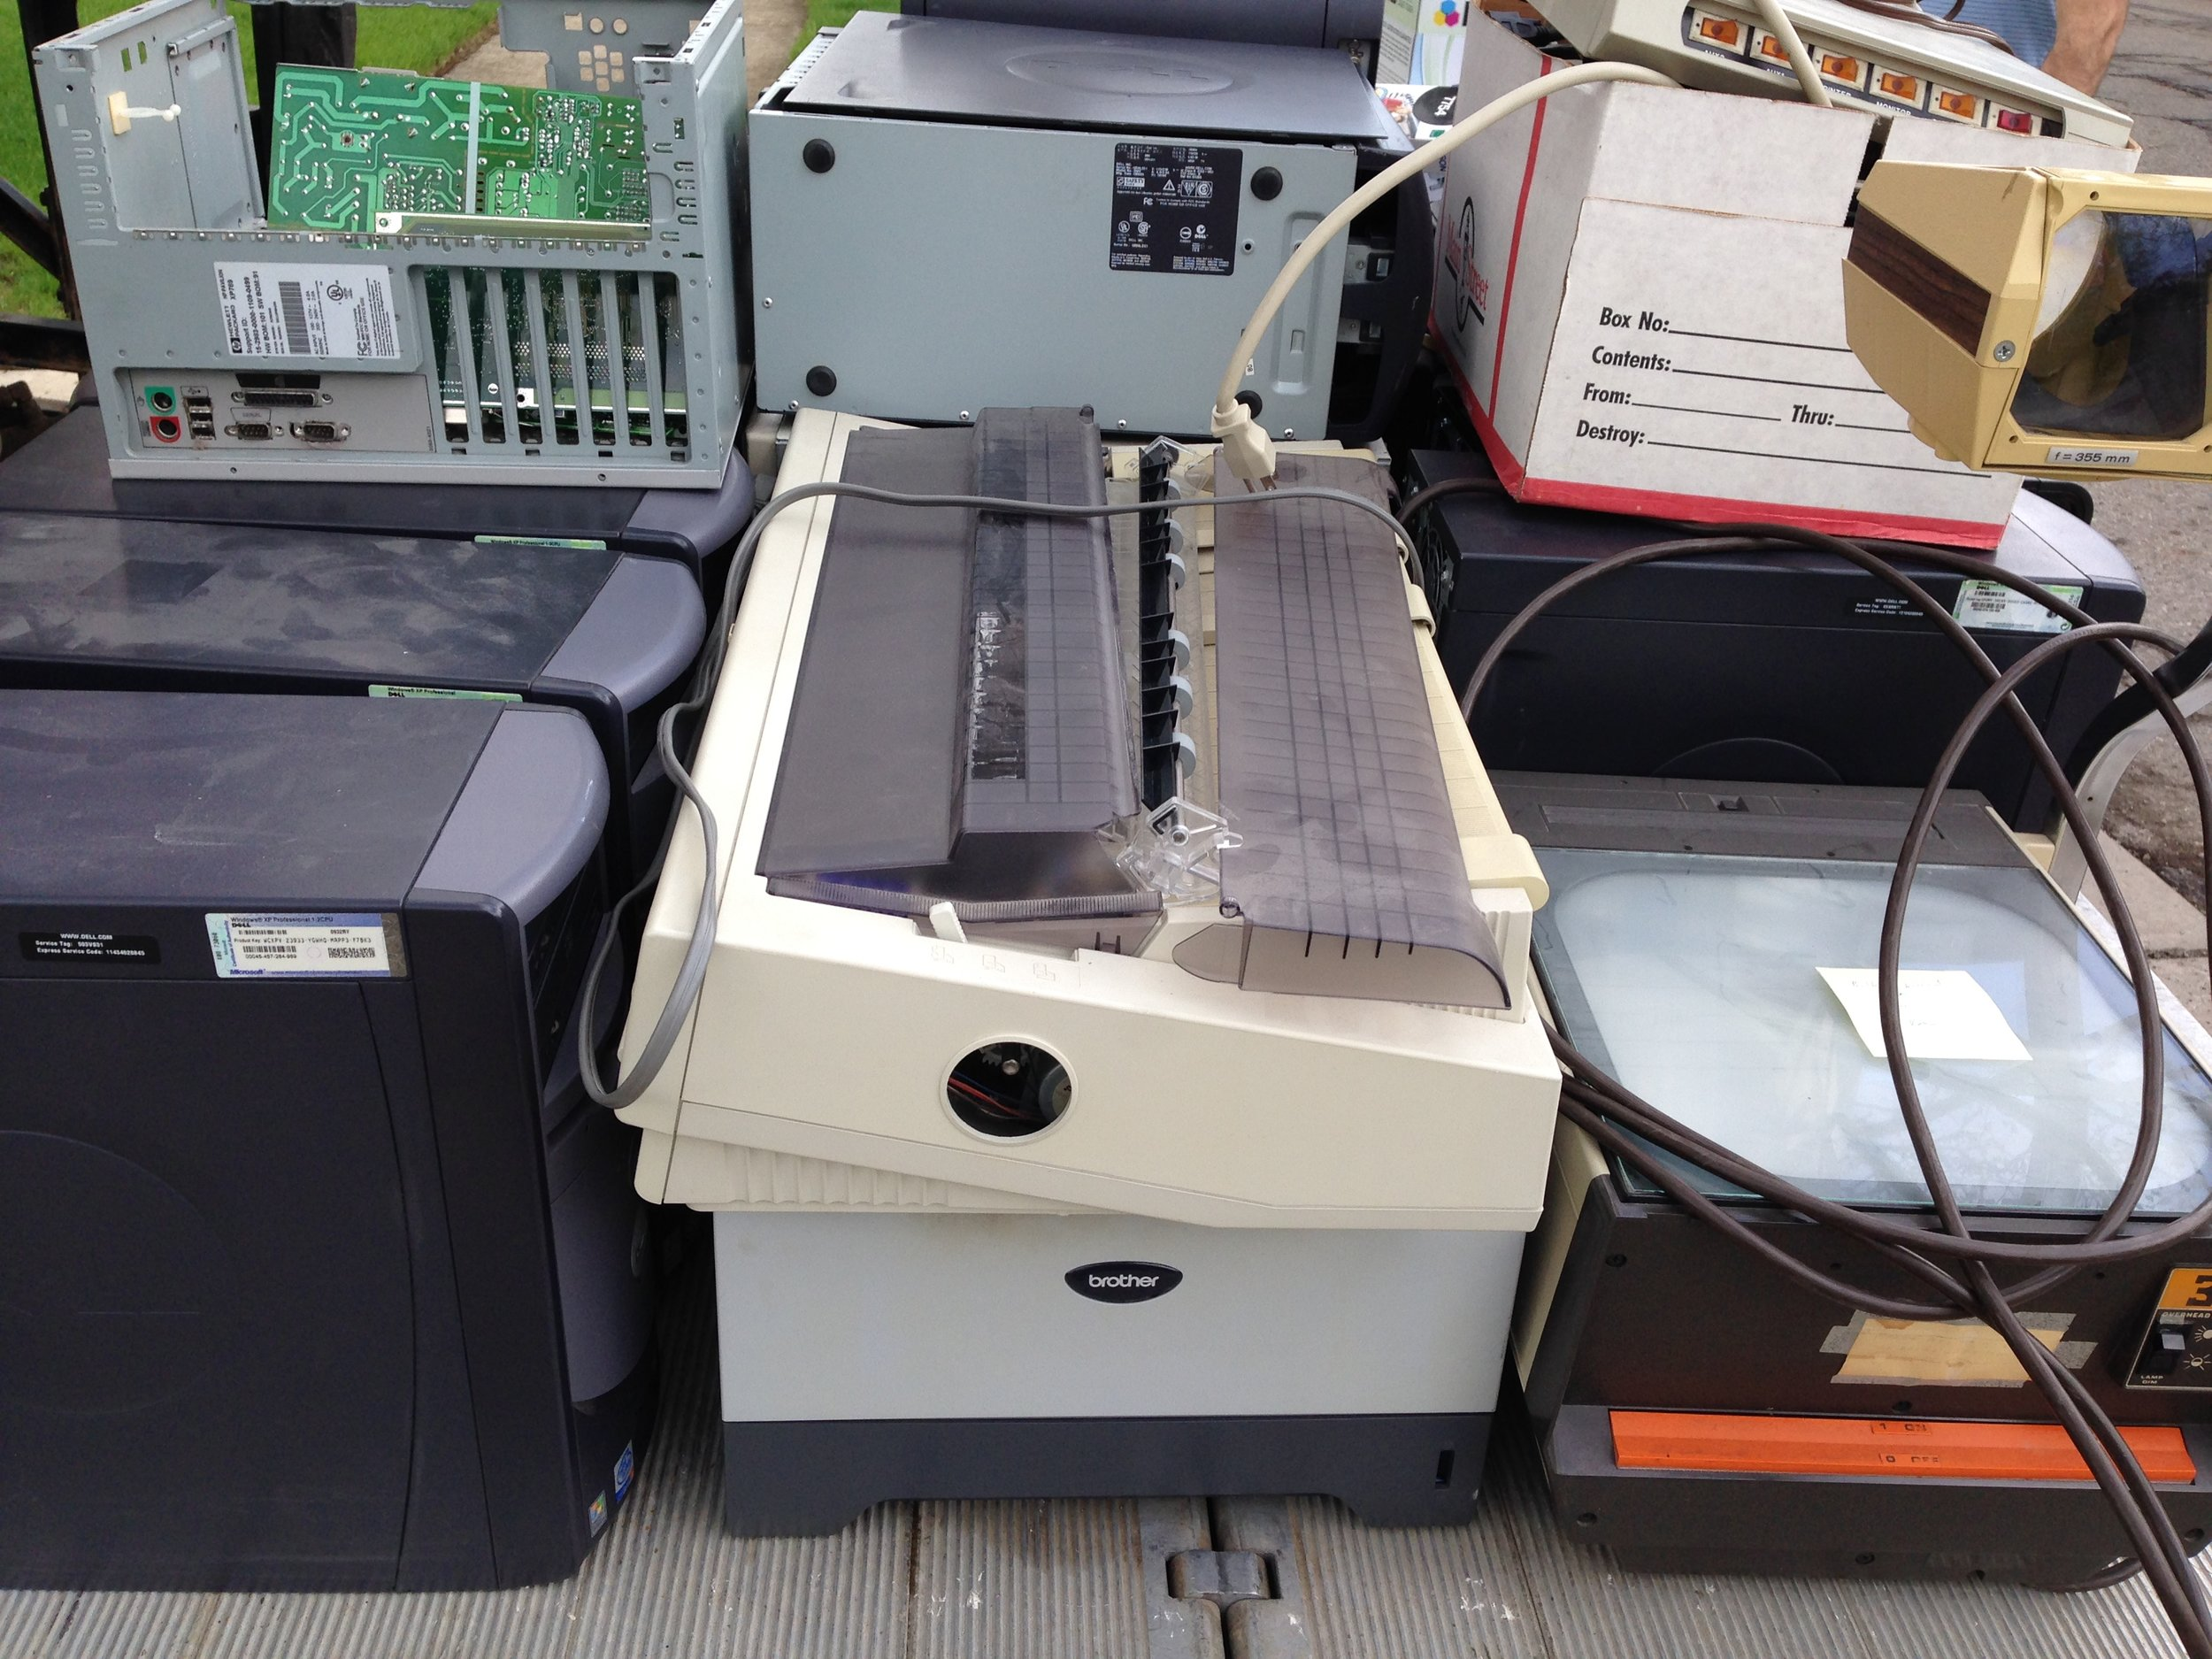 Electronic equipment collected at our 2016 drive included computers, printers, and even an old overhead projector!